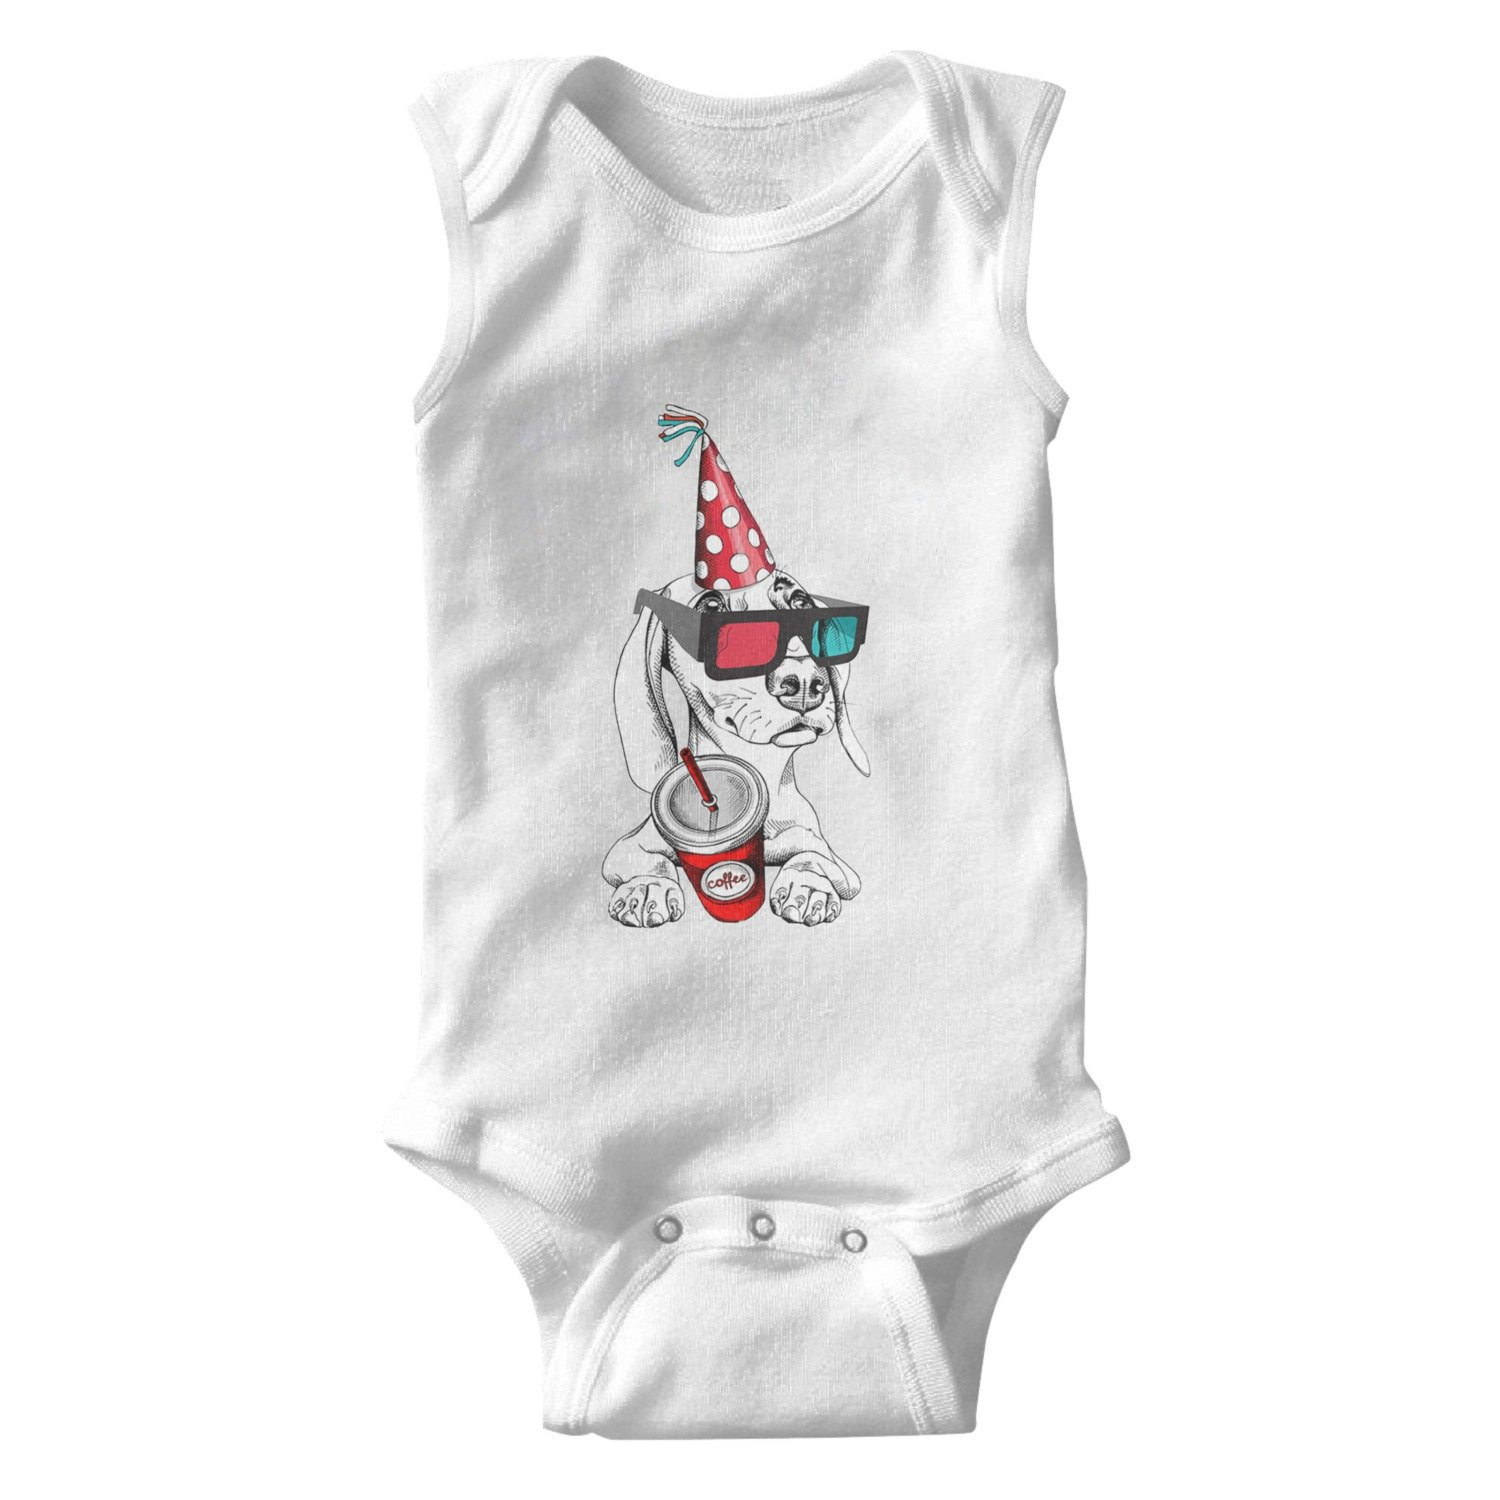 lsawdas Cute Dachshund with Glasses Party Cap Coffee Unisex Baby Cotton Sleeveless Baby Jumpsuit Baby Onesies White